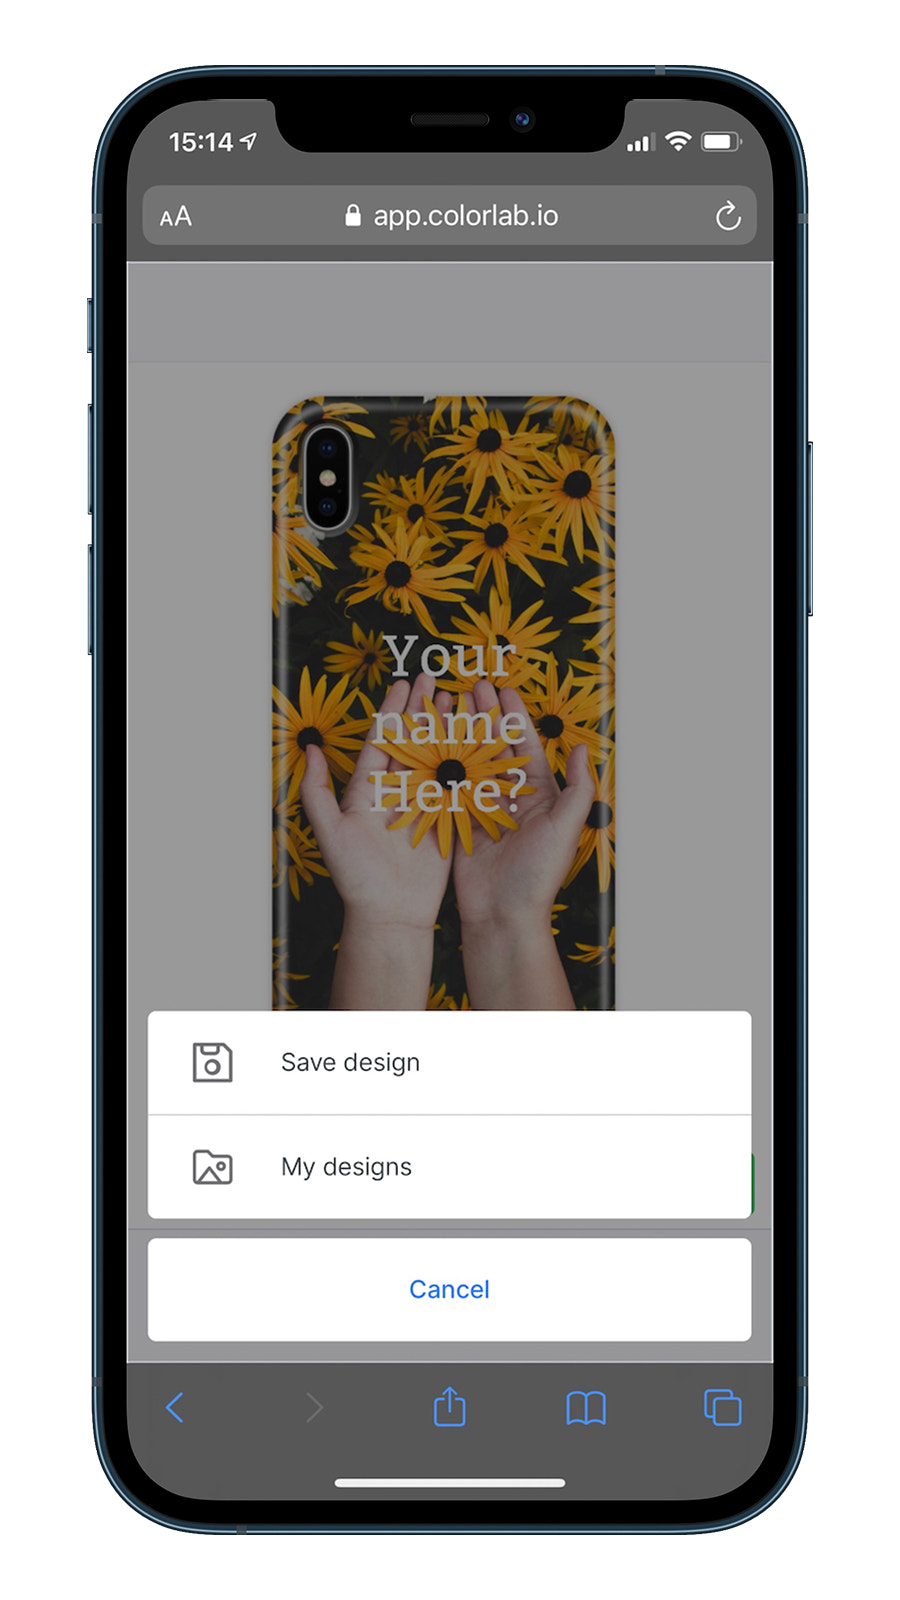 Save your design on a mobile device